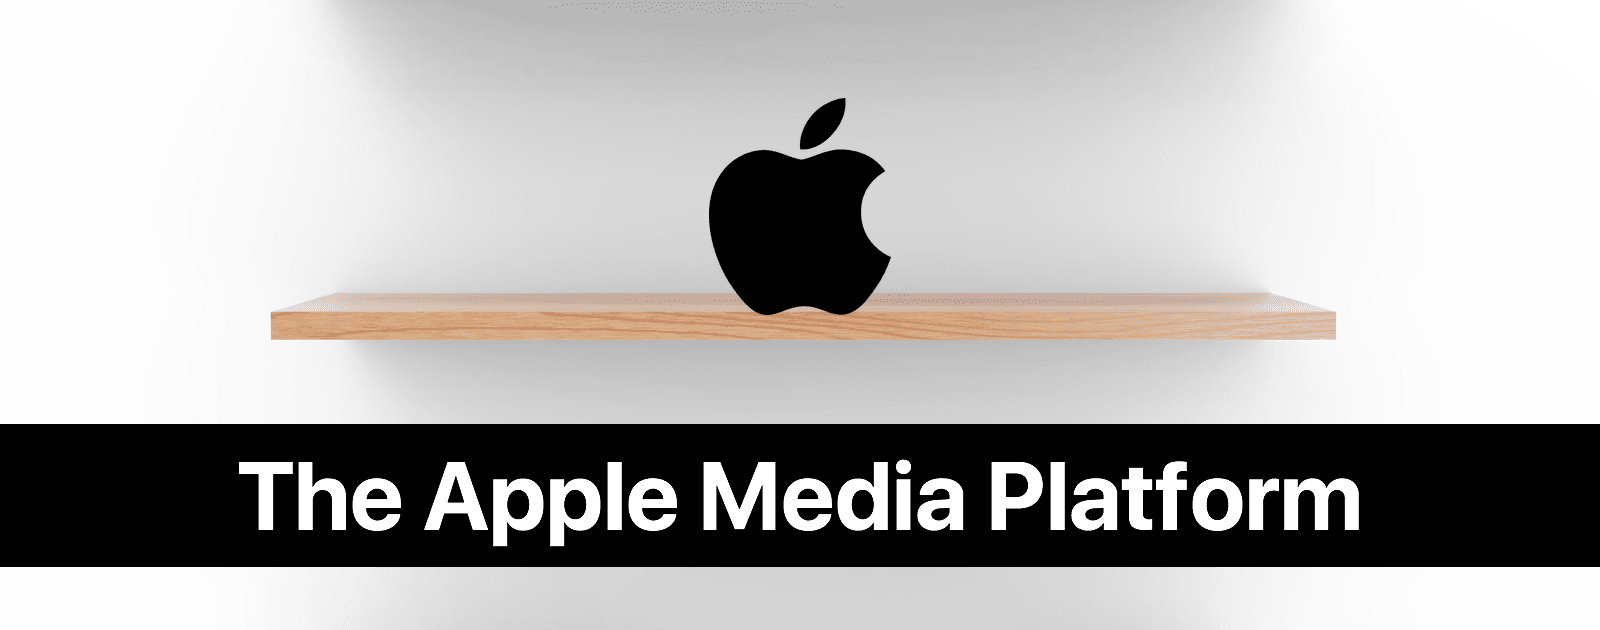 Assessing Apple's Shift to Services